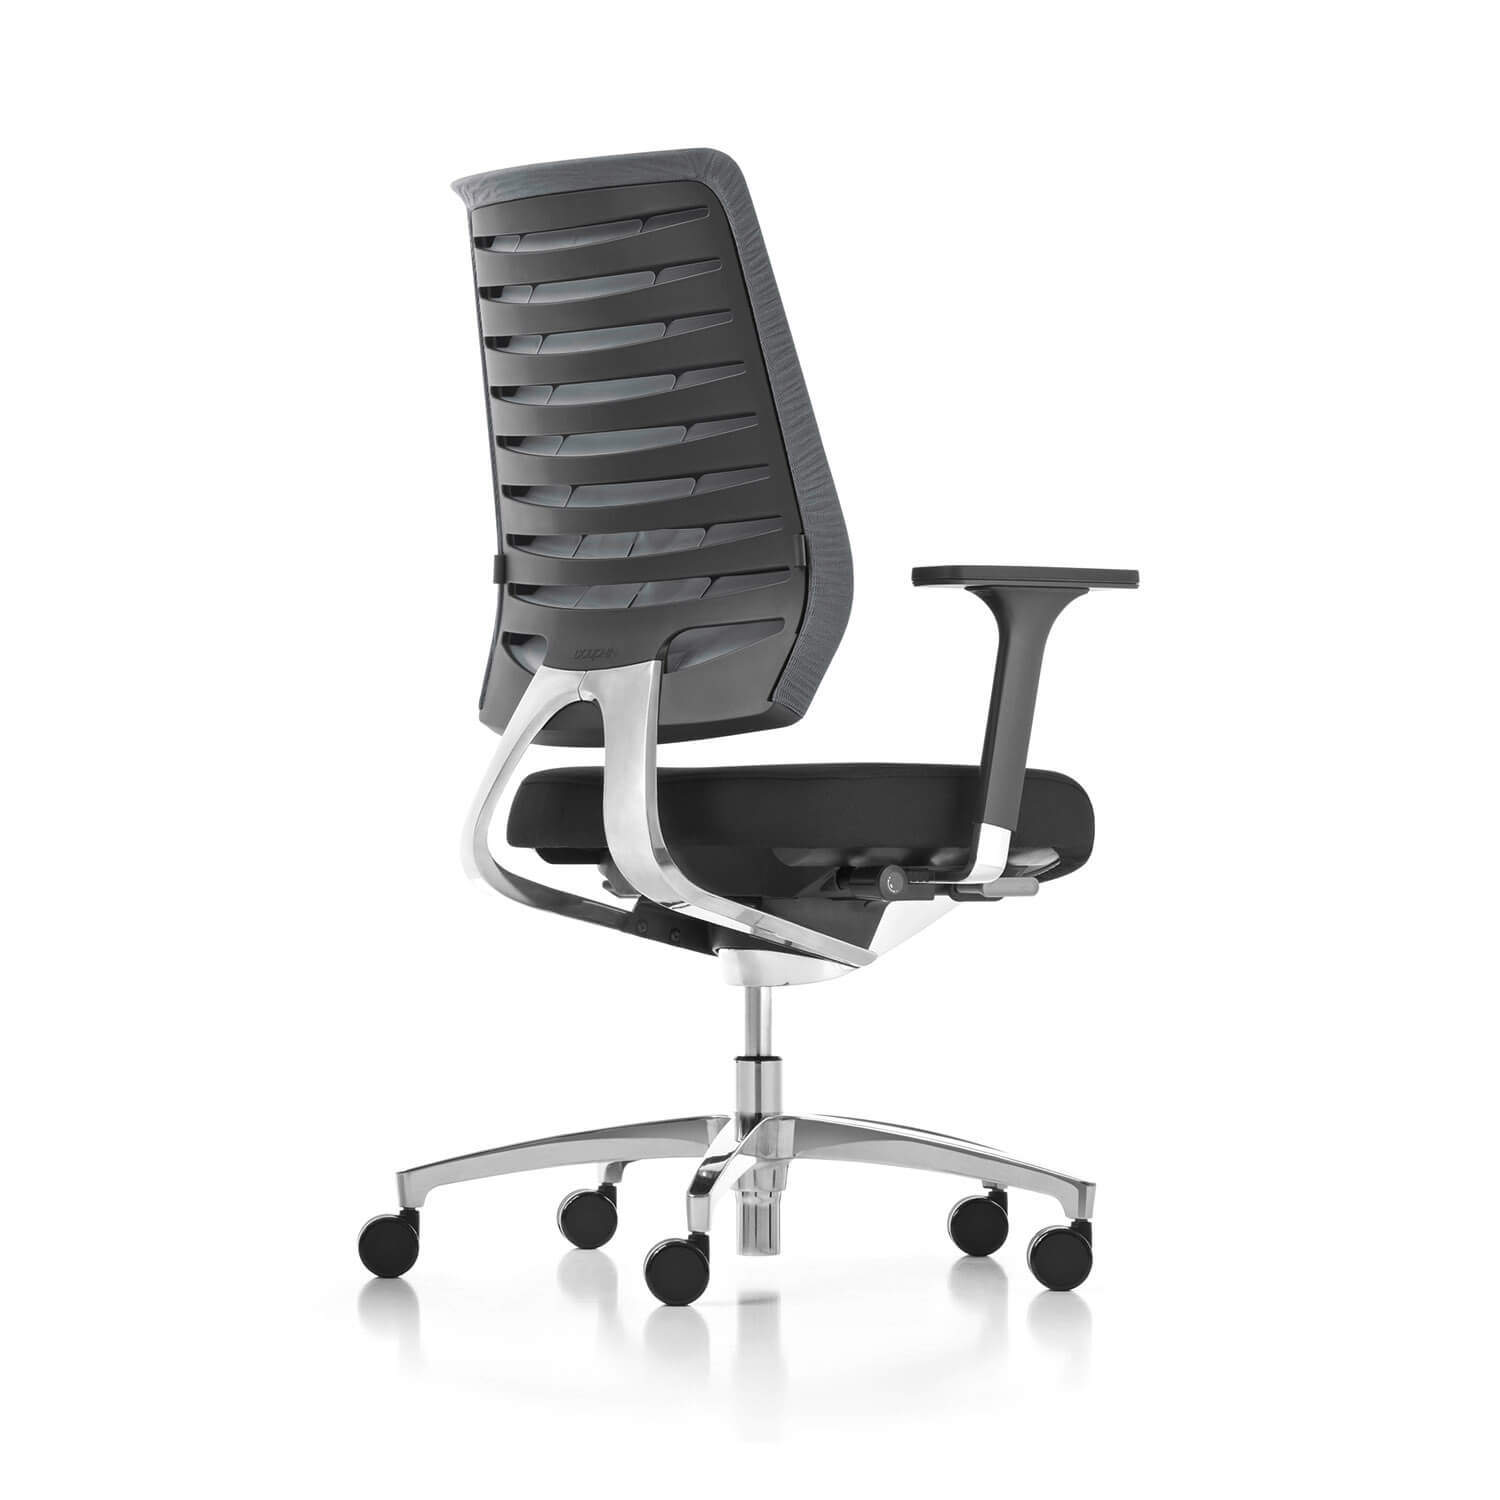 X-Code_Office Chairs6